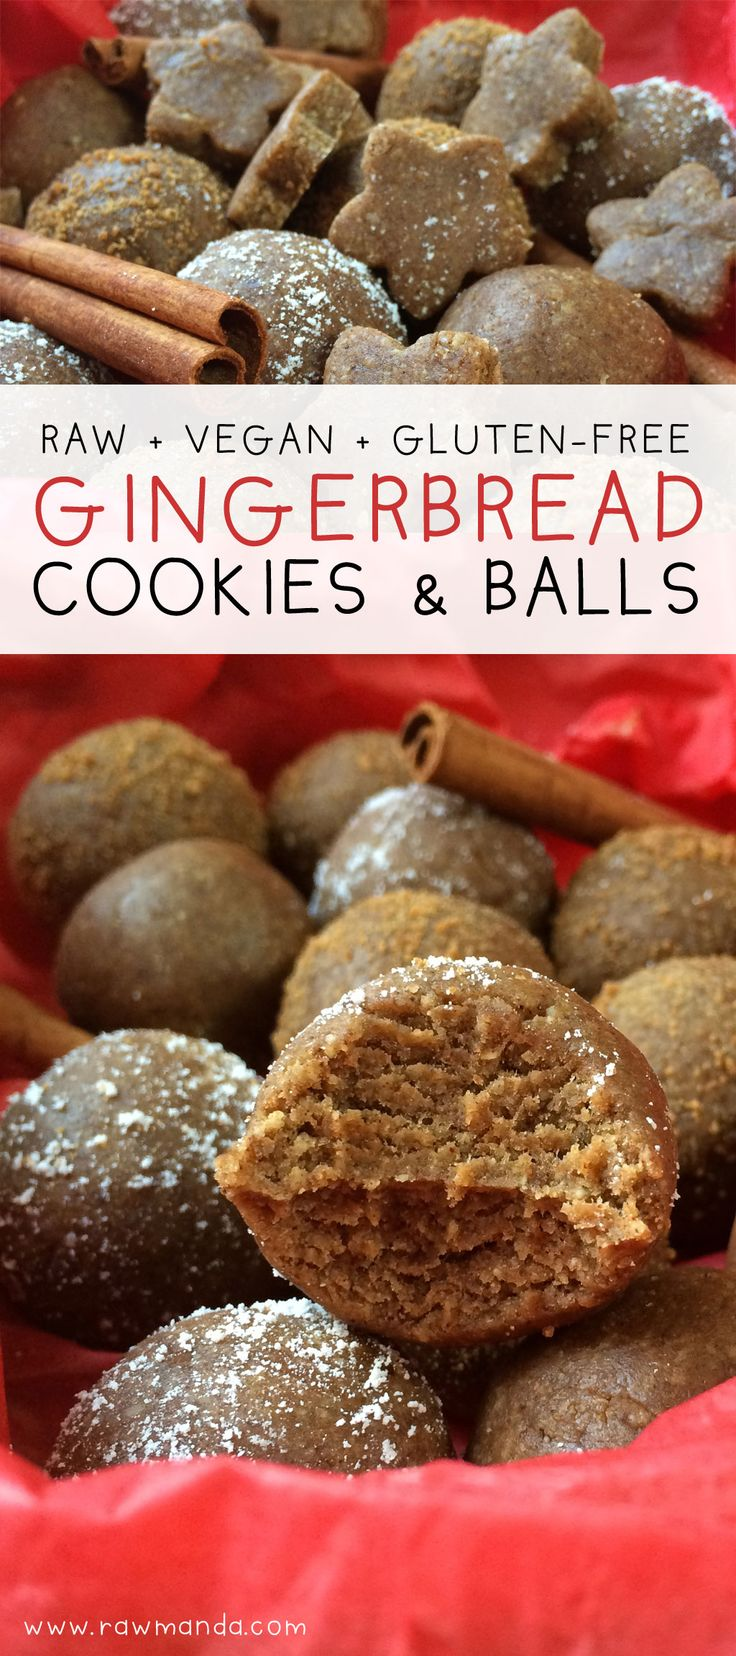 Raw Gingerbread Cookie Recipe (Vegan,Gluten-Free) - Perfect delicious treat for staying healthy all year round! @rawmanda